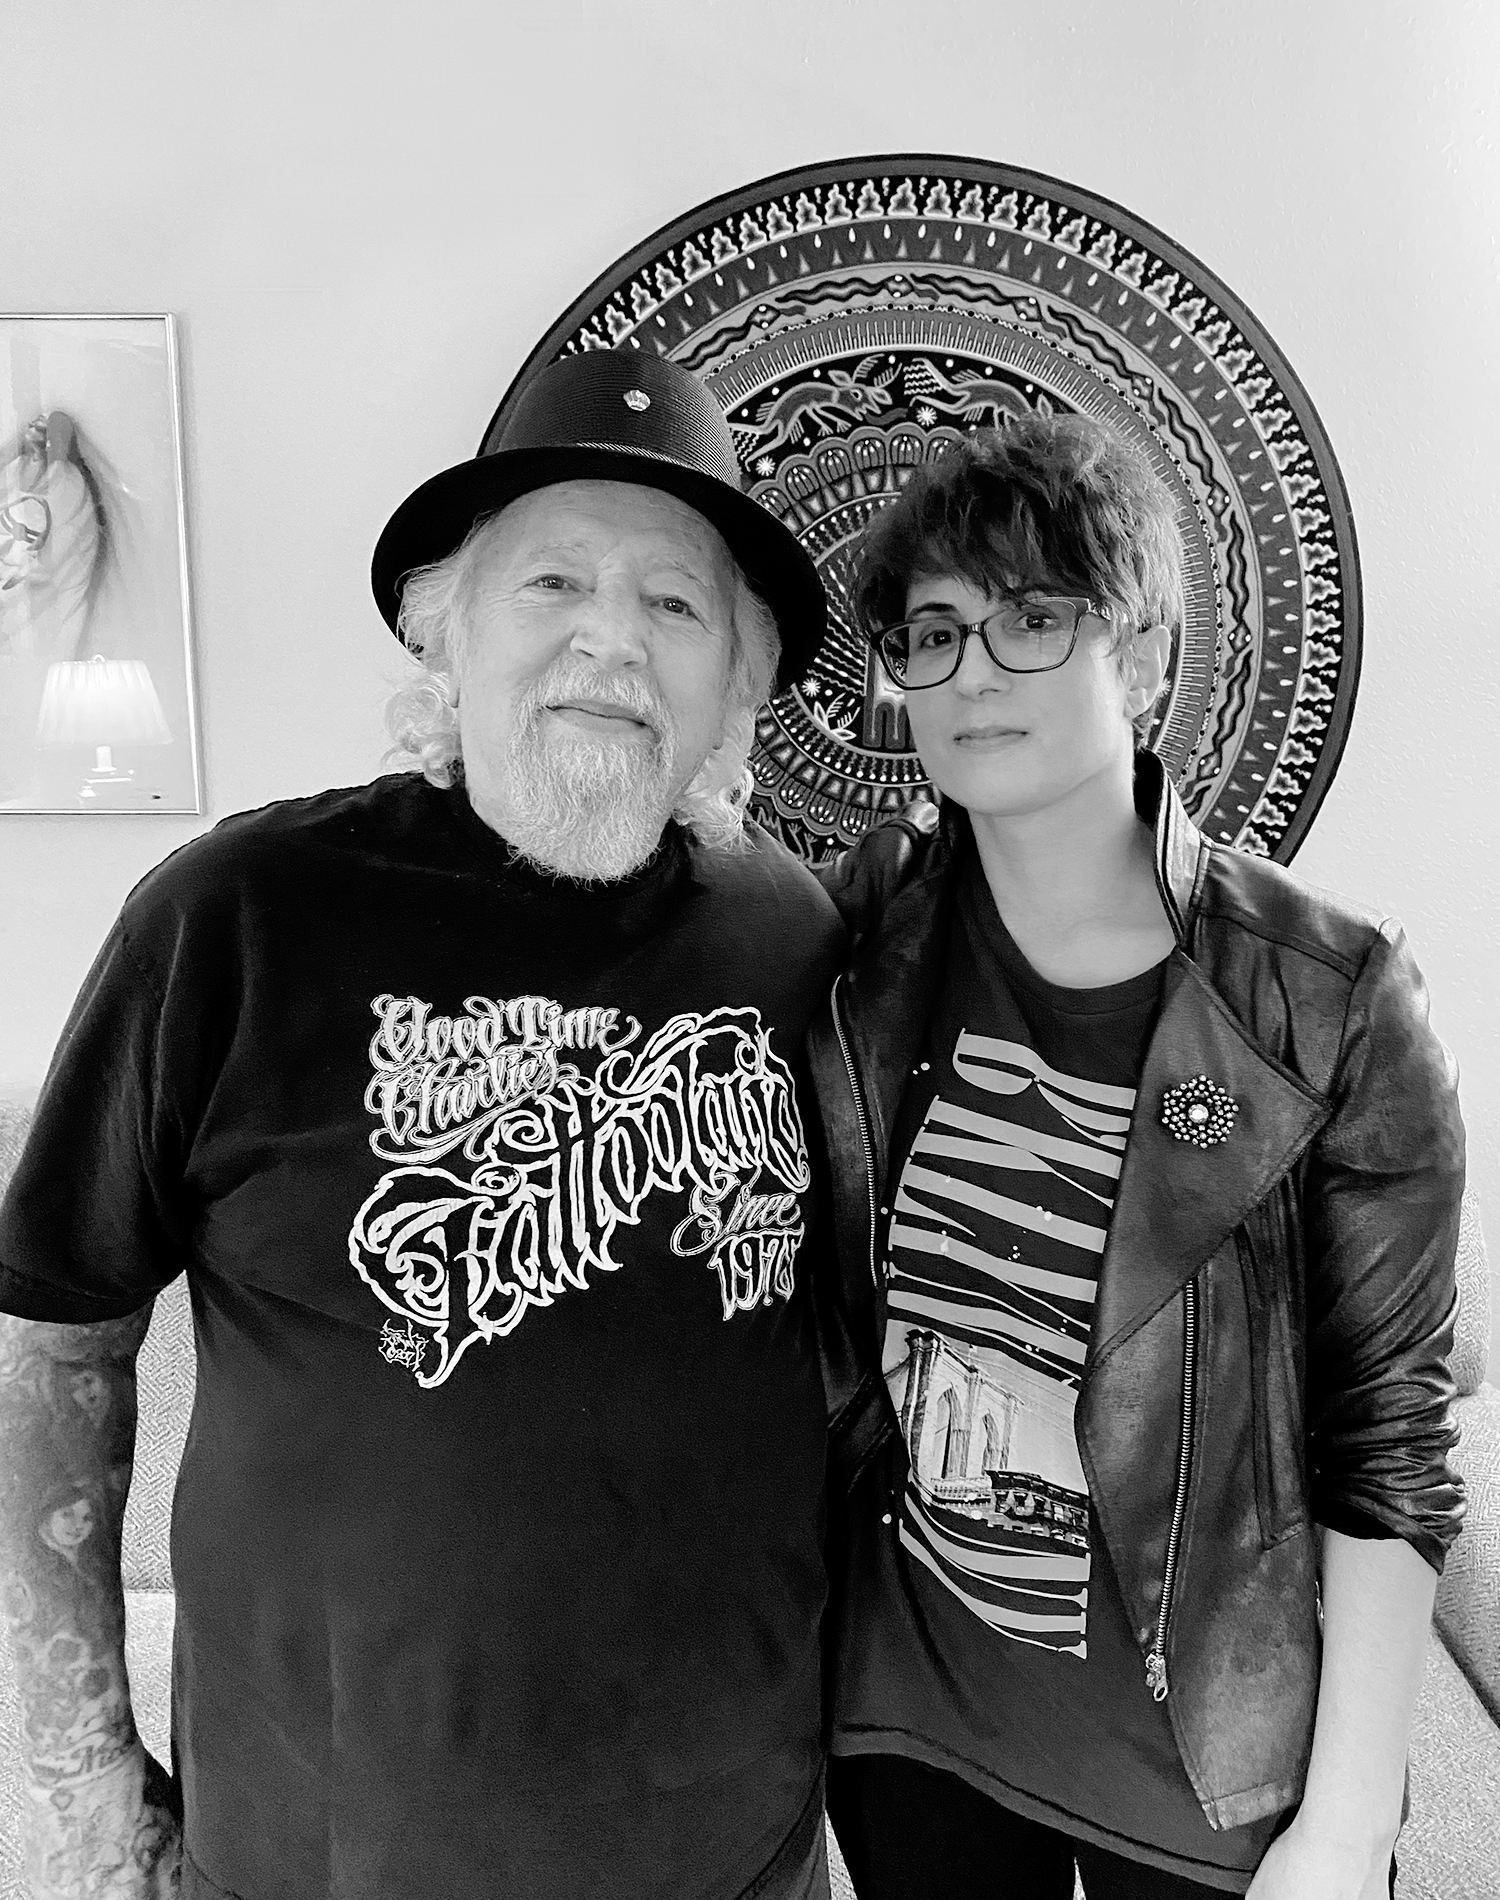 Legendary tattooer Charlie Cartwright (good time charlie) and tattoo journalist Adriana de Barros